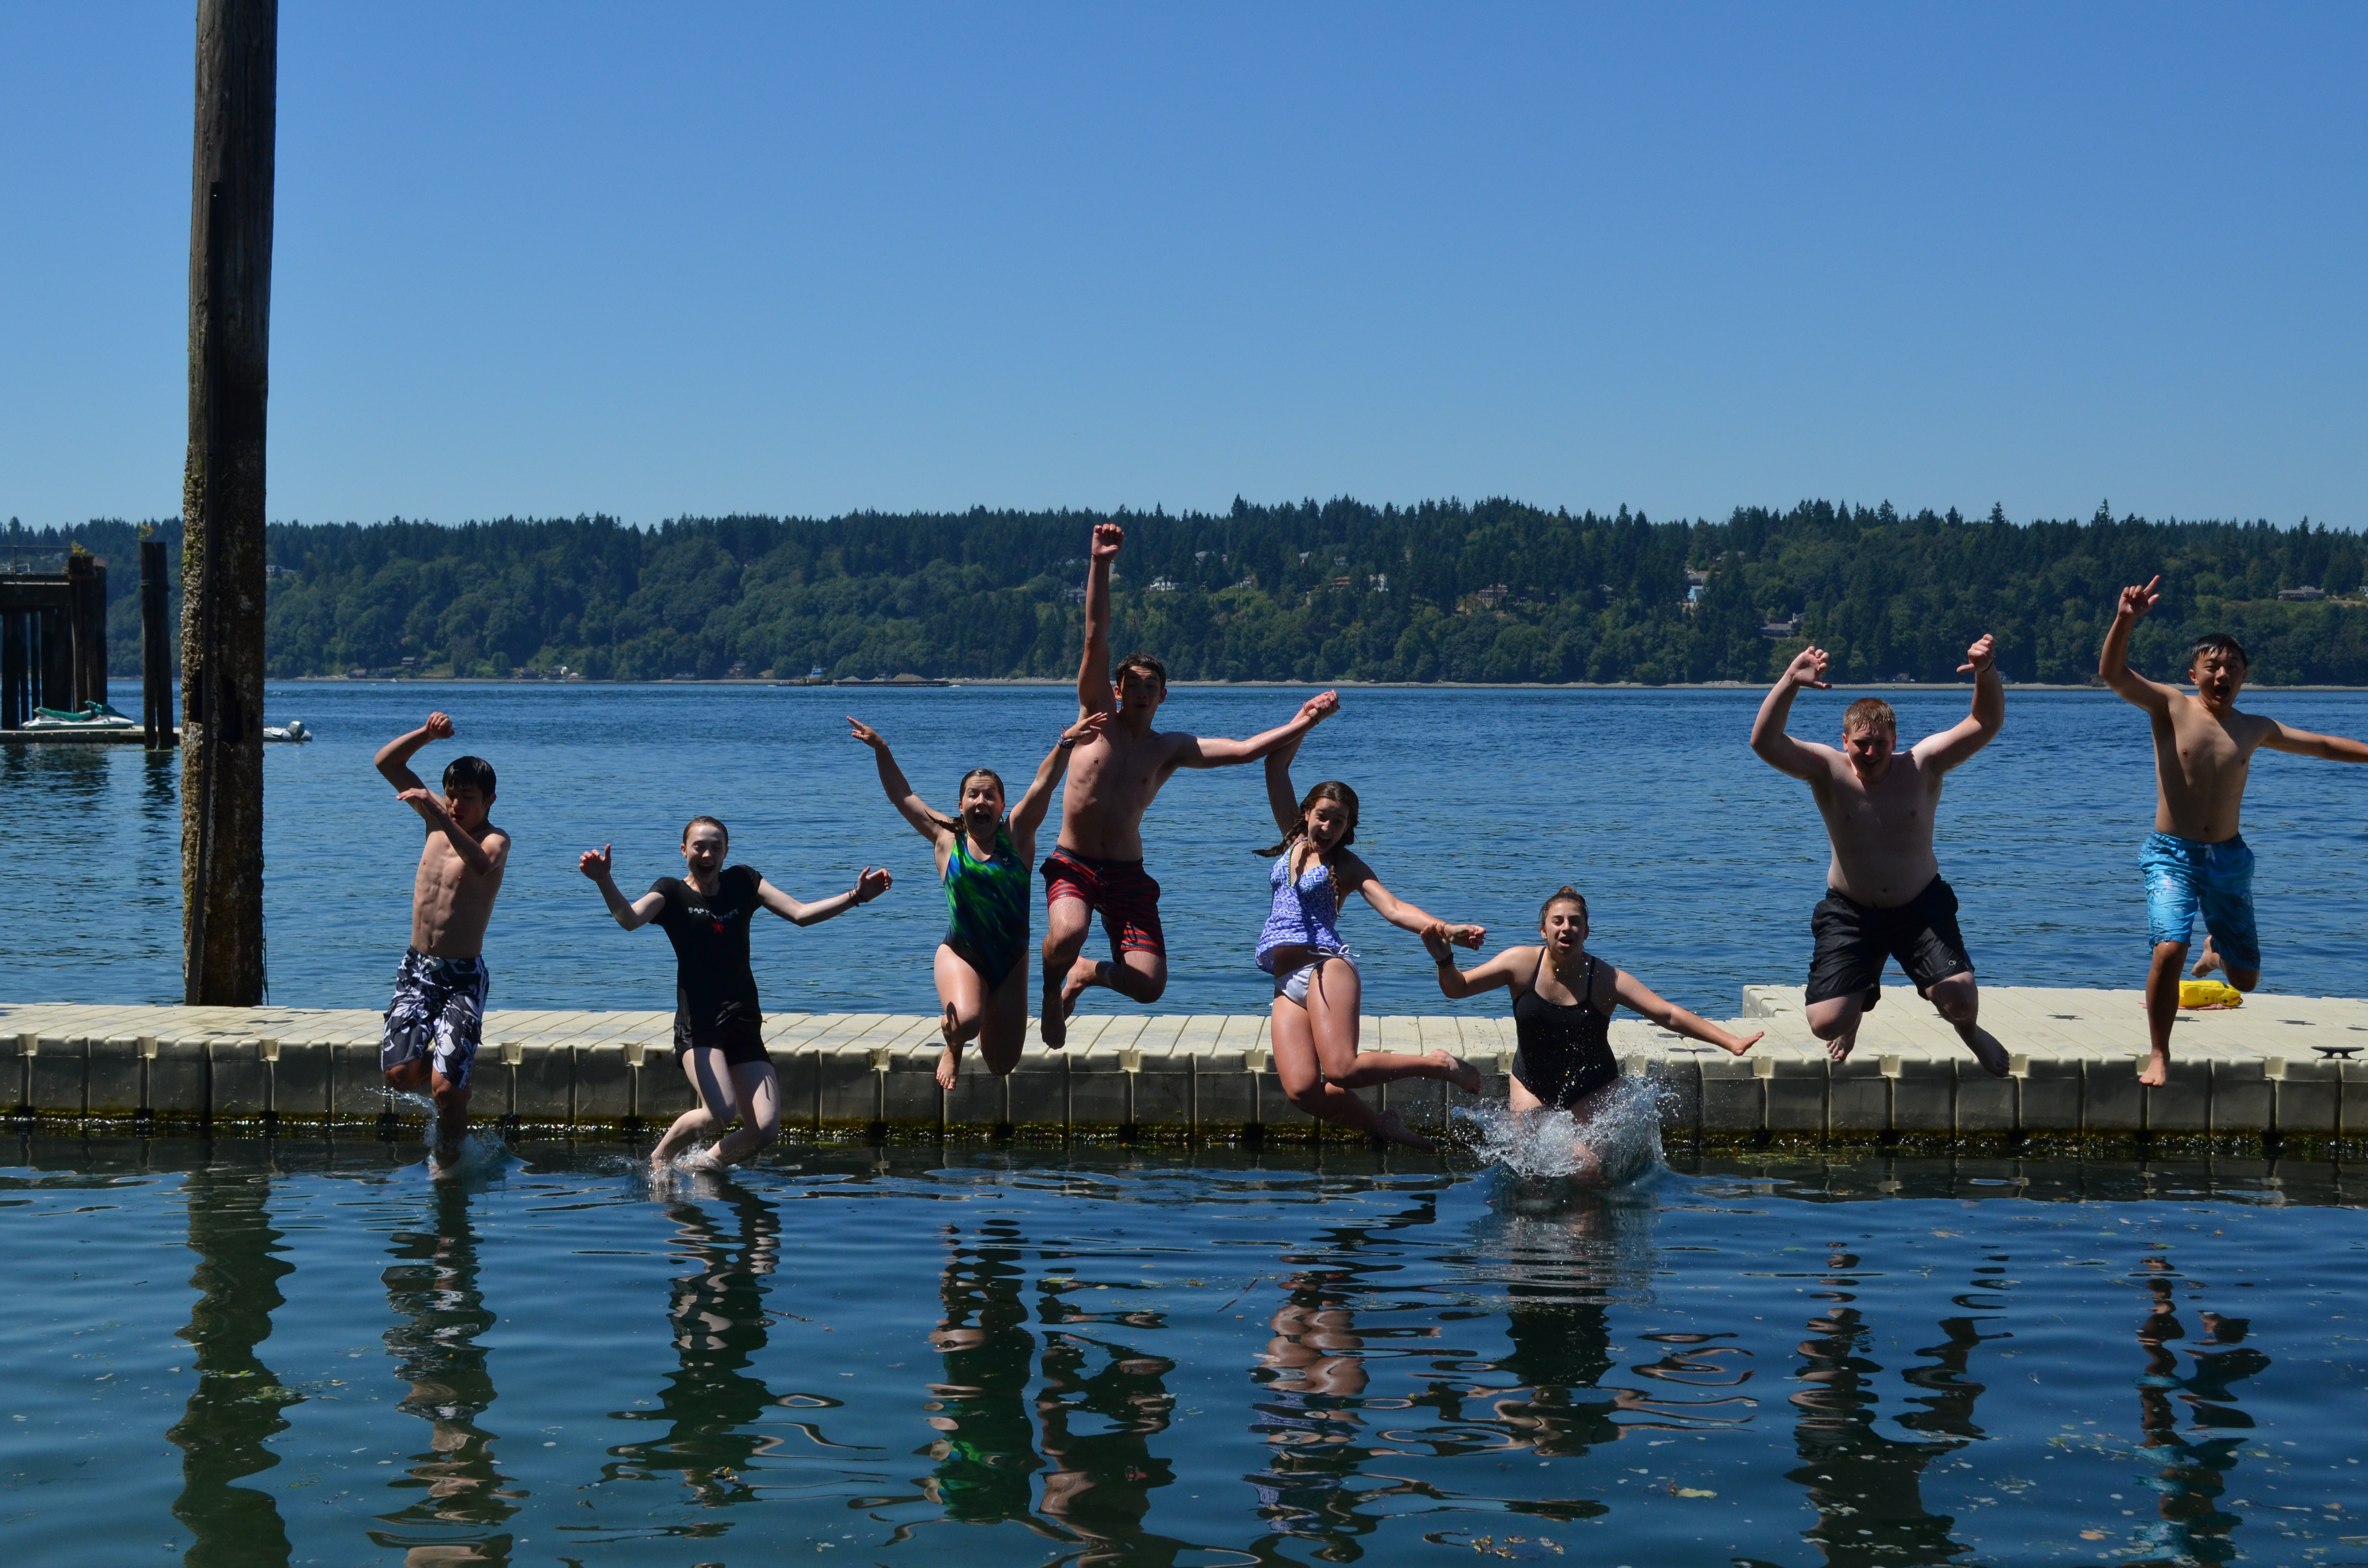 Swimmers jumping off the dock at Camp Sealth